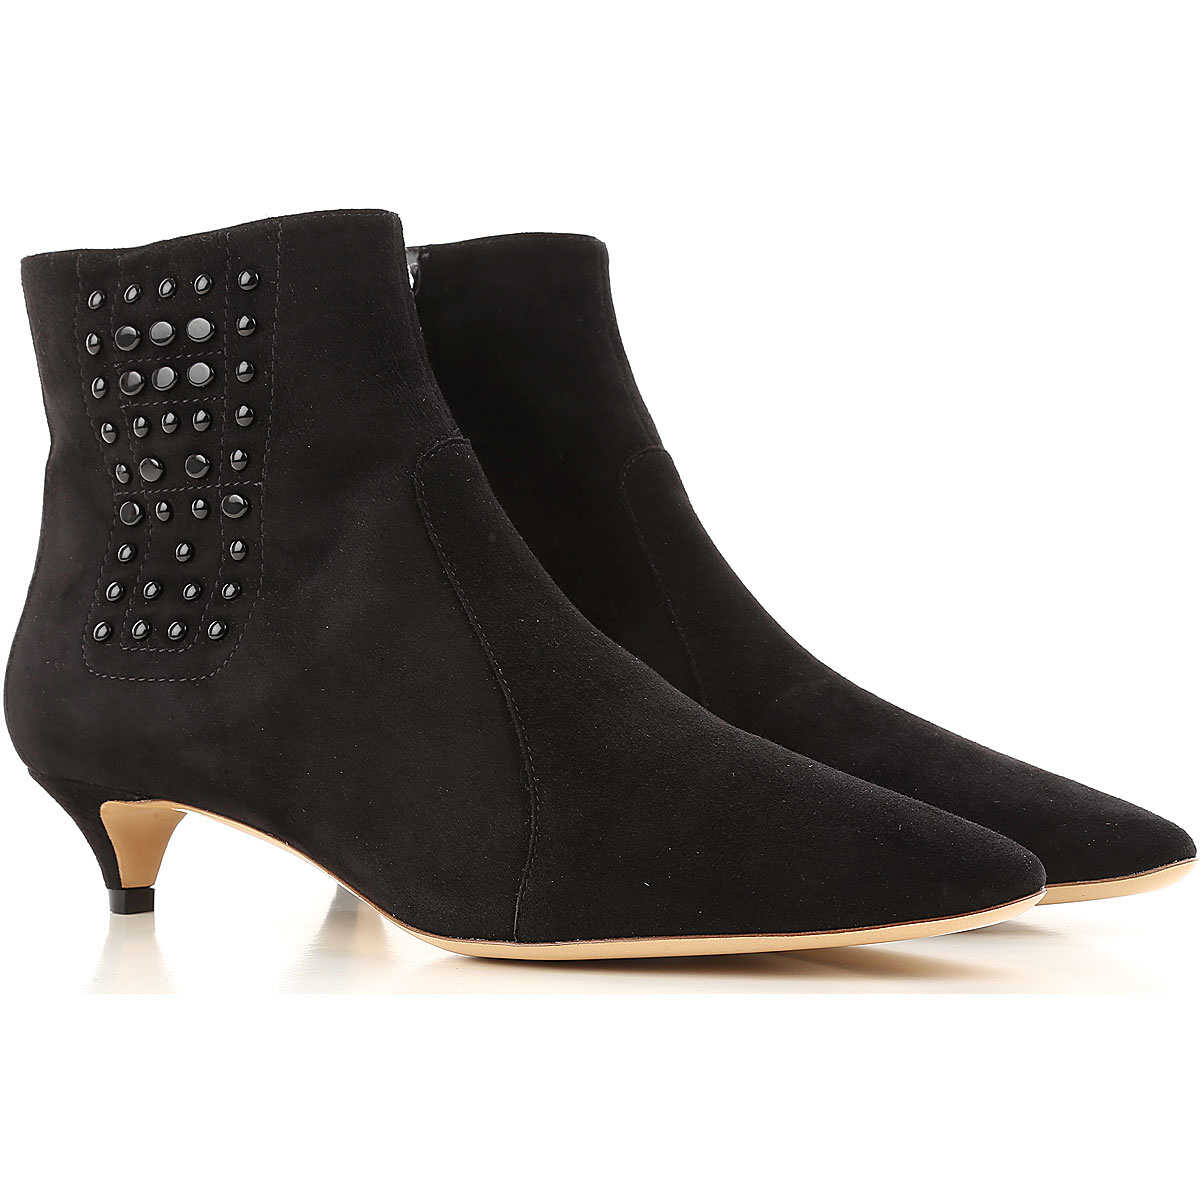 Tods Boots for Women 3.5 4 4.5 6 Booties On Sale in Outlet UK - GOOFASH